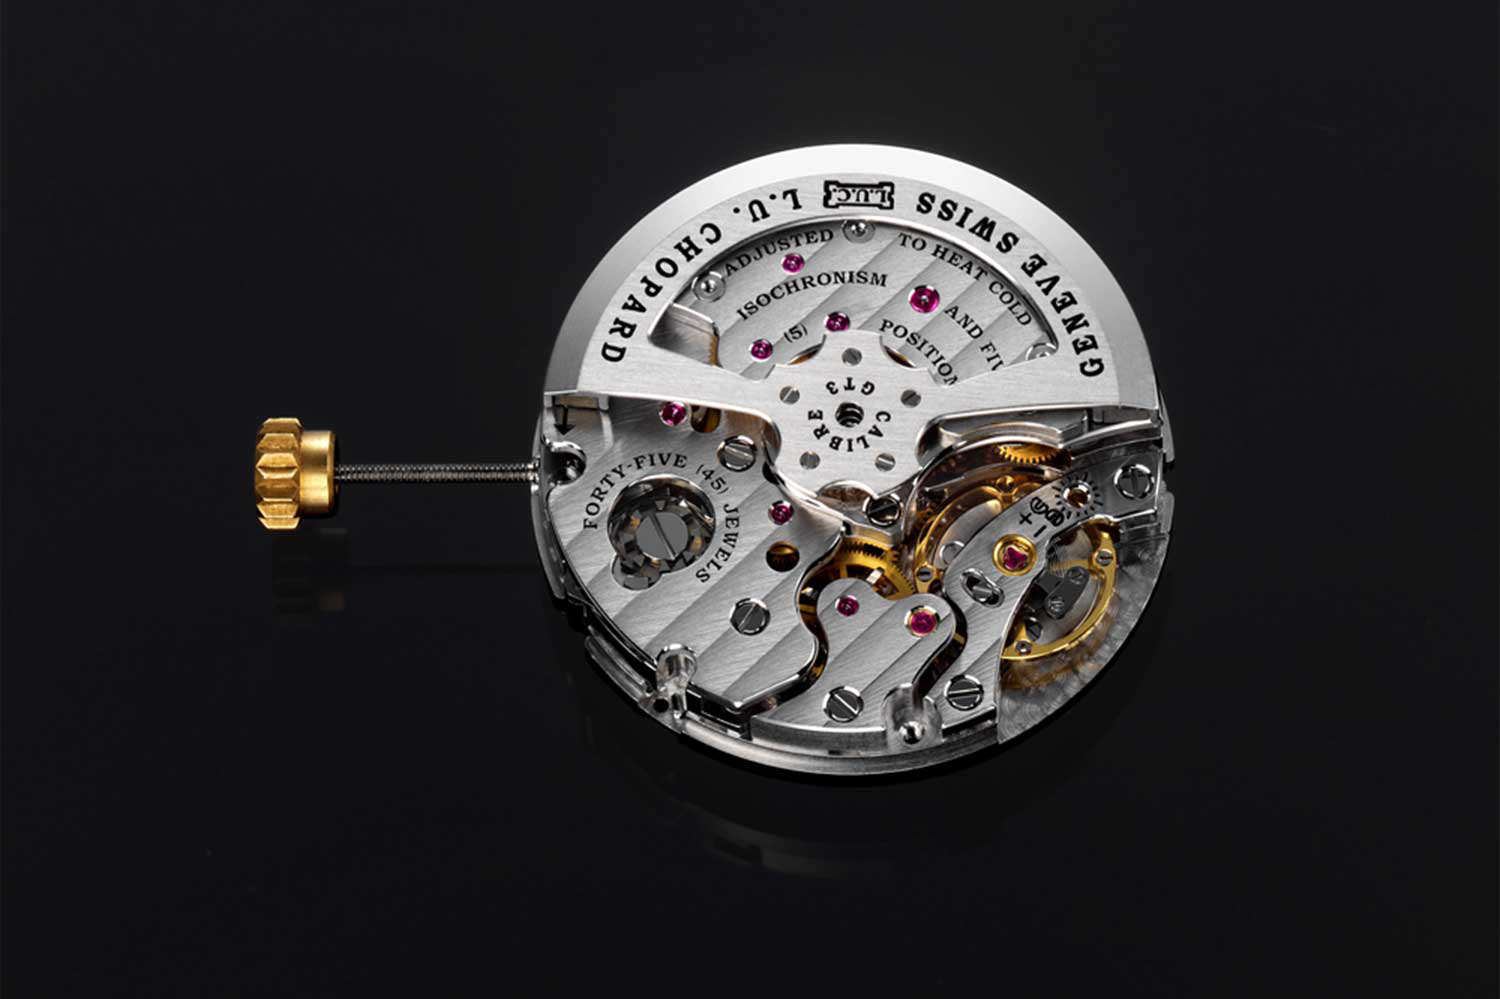 The groundbreaking L.U.C 10 CF movement was launched on the occasion of L.U.C's 10th anniversary in 2006. It is the only chronograph movement in the world that features a zero reset for the small running seconds.